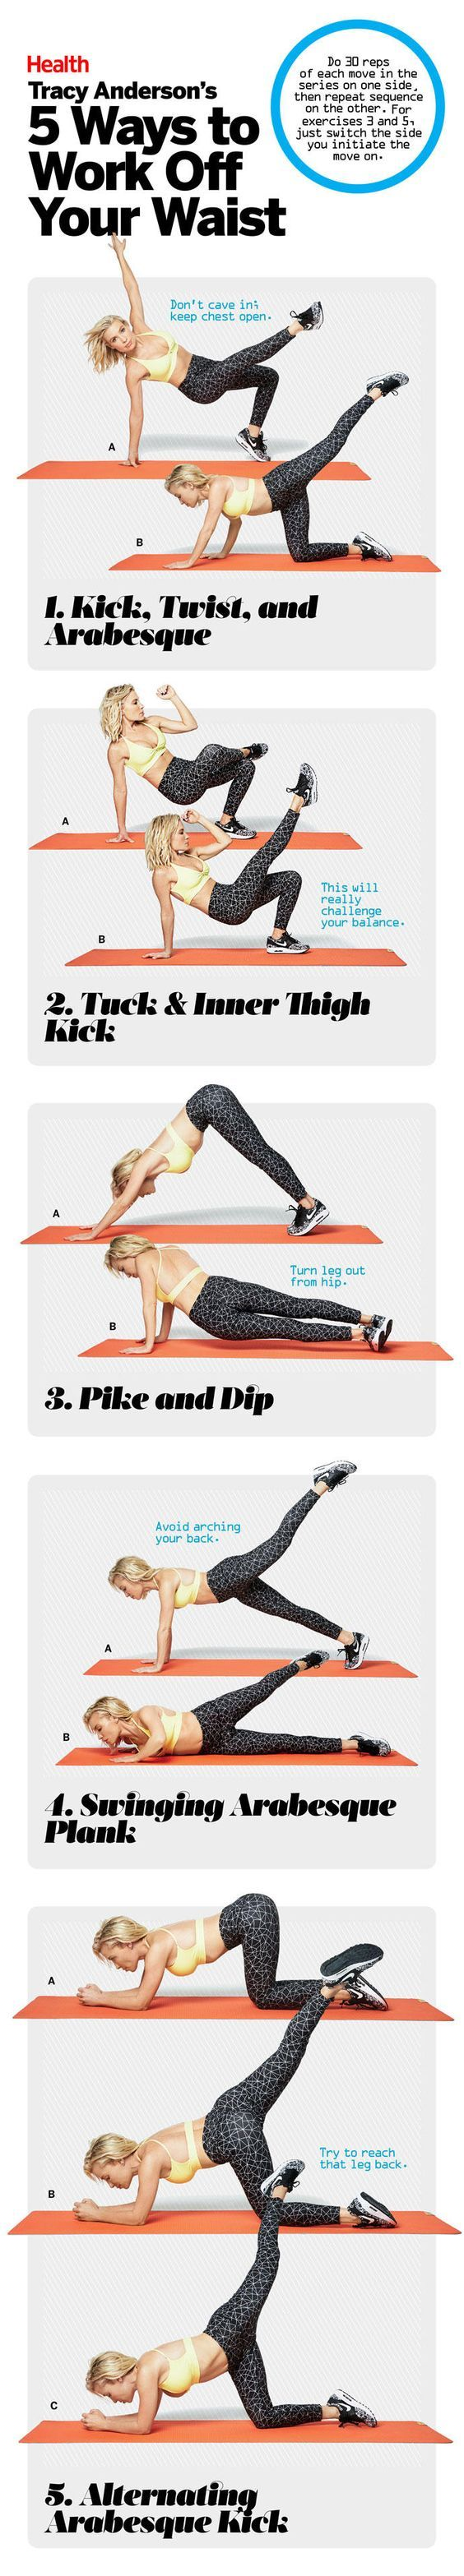 how to get big hips small waist